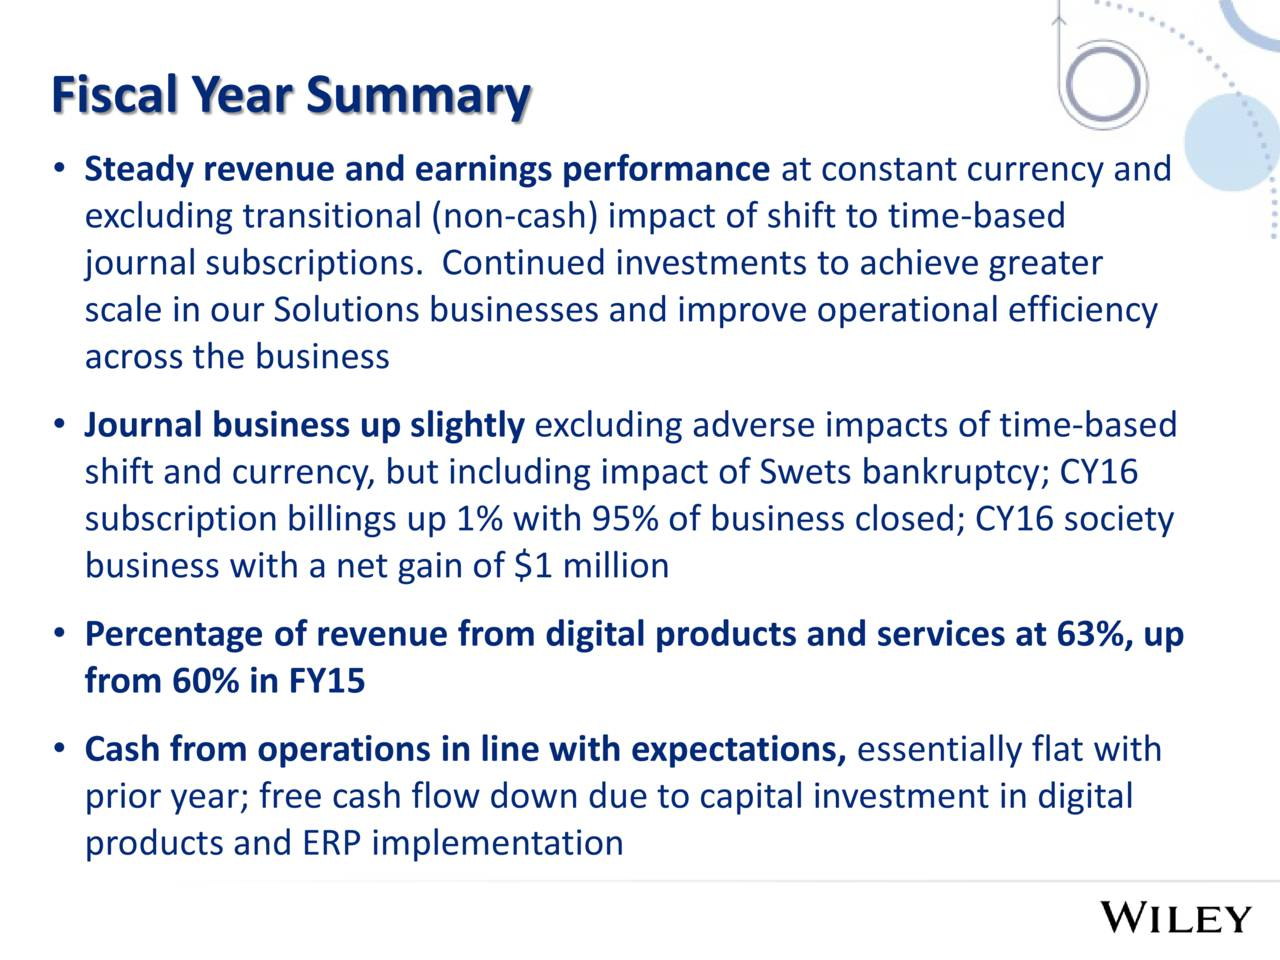 Steady revenue and earnings performance at constant currency and excluding transitional (non-cash) impact of shift to time-based journal subscriptions. Continued investments to achieve greater scale in our Solutions businesses and improve operational efficiency across the business Journal business up slightly excluding adverse impacts of time-based shift and currency, but including impact of Swets bankruptcy; CY16 subscription billings up 1% with 95% of business closed; CY16 society business with a net gain of $1 million Percentage of revenue from digital products and services at 63%, up from 60% in FY15 Cash from operations in line with expectations, essentially flat with prior year; free cash flow down due to capital investment in digital products and ERP implementation